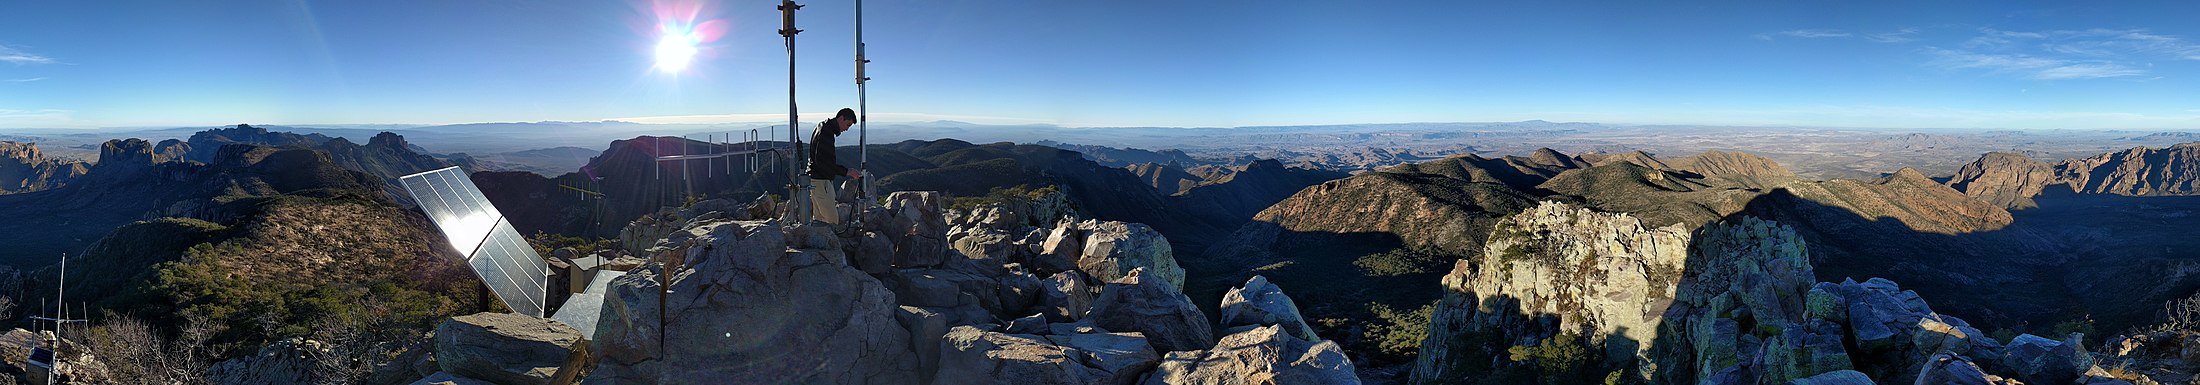 Emory Peak's summit, the highest point in Big Bend National Park Emory Peak's summit.jpg